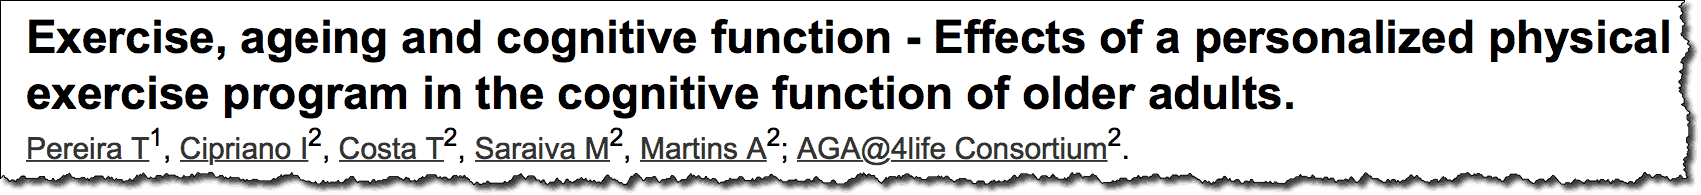 Exercise, ageing and cognitive function - Effects of a personalized physical exercise program in the cognitive function of older adults.